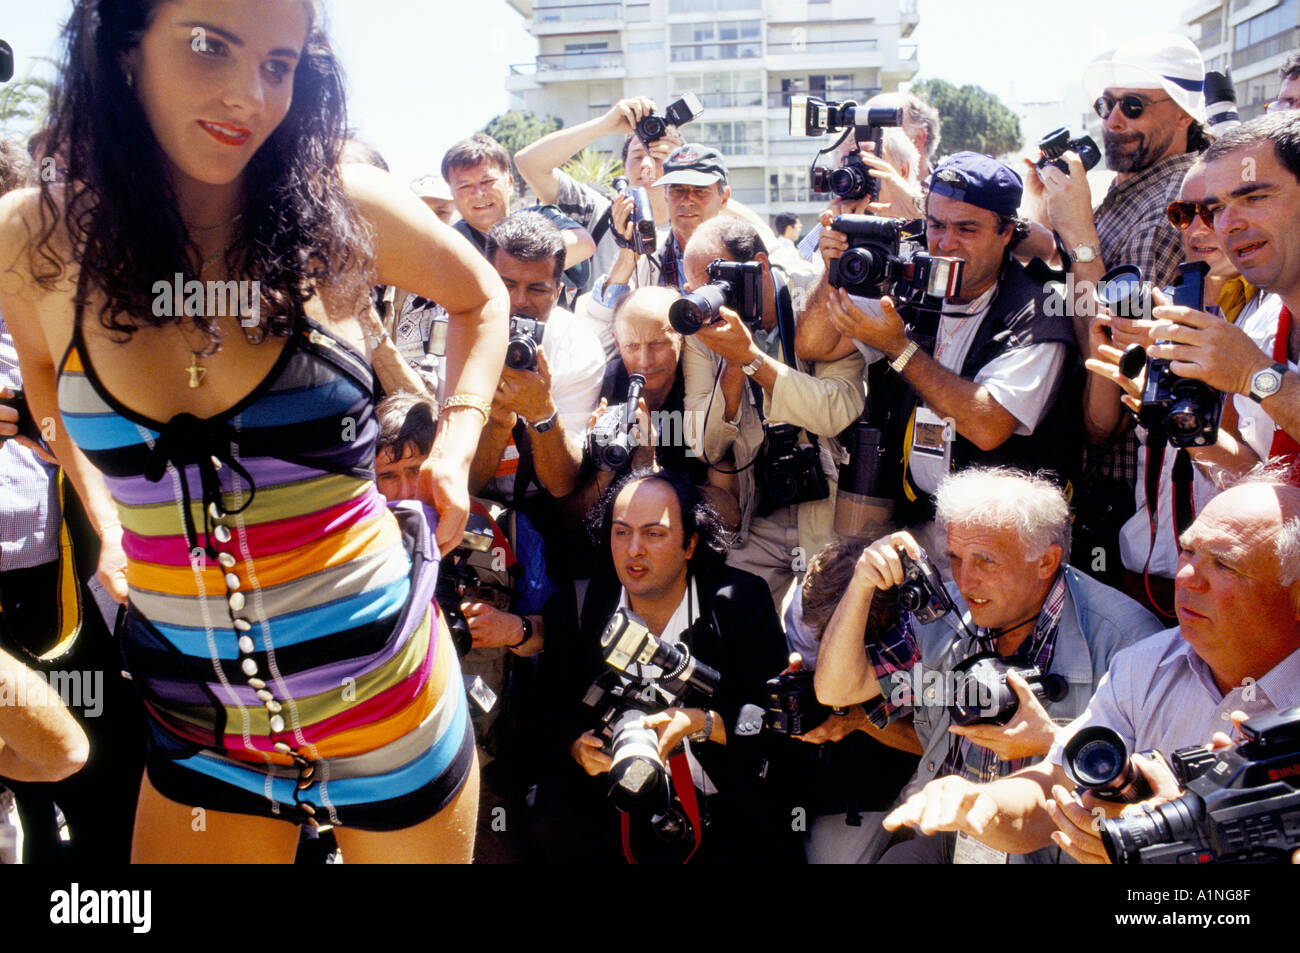 Porn At Festival cannes film festival the porn awards posing for